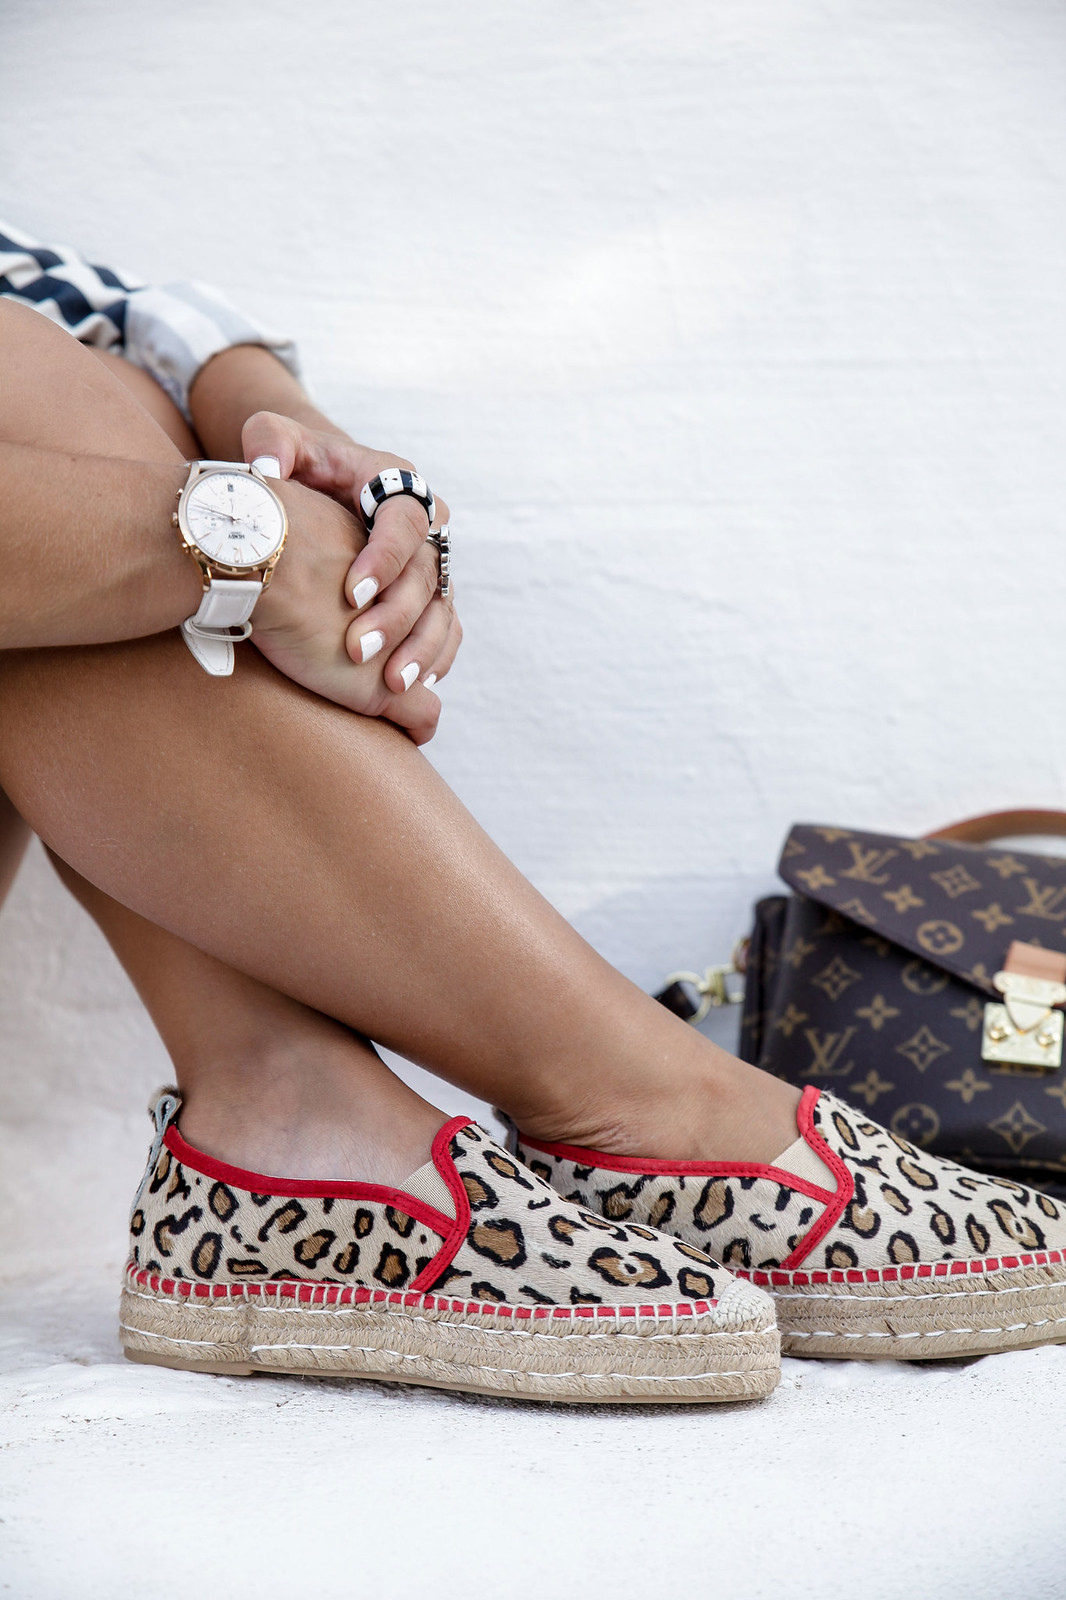 012_Leopard_and_stripes_perfec_mix_print_outfit_THEGUESTGIRL